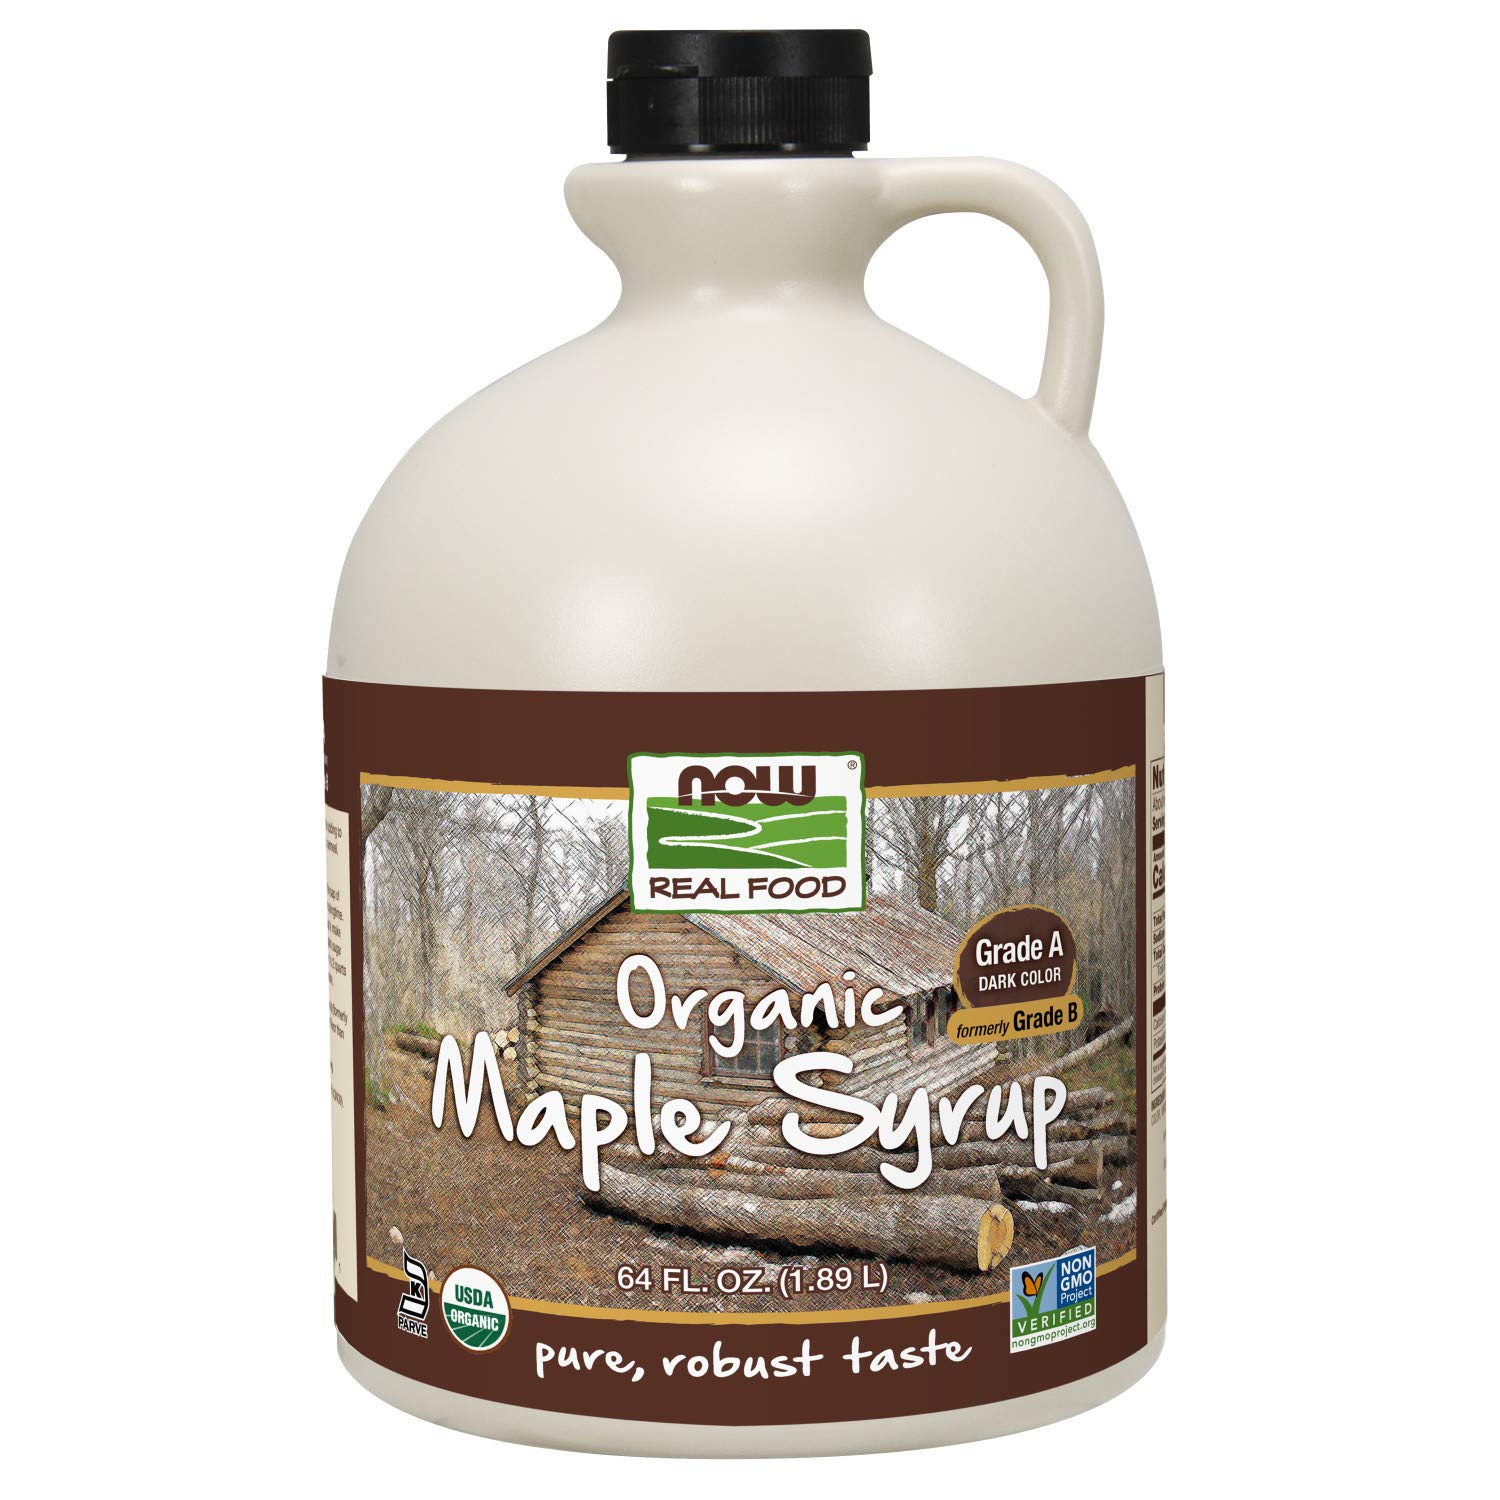 NOW Foods, Certified Organic Maple Syrup, Grade A Dark Color, Certified Non-GMO, Pure, Robust Taste, 64-Ounce